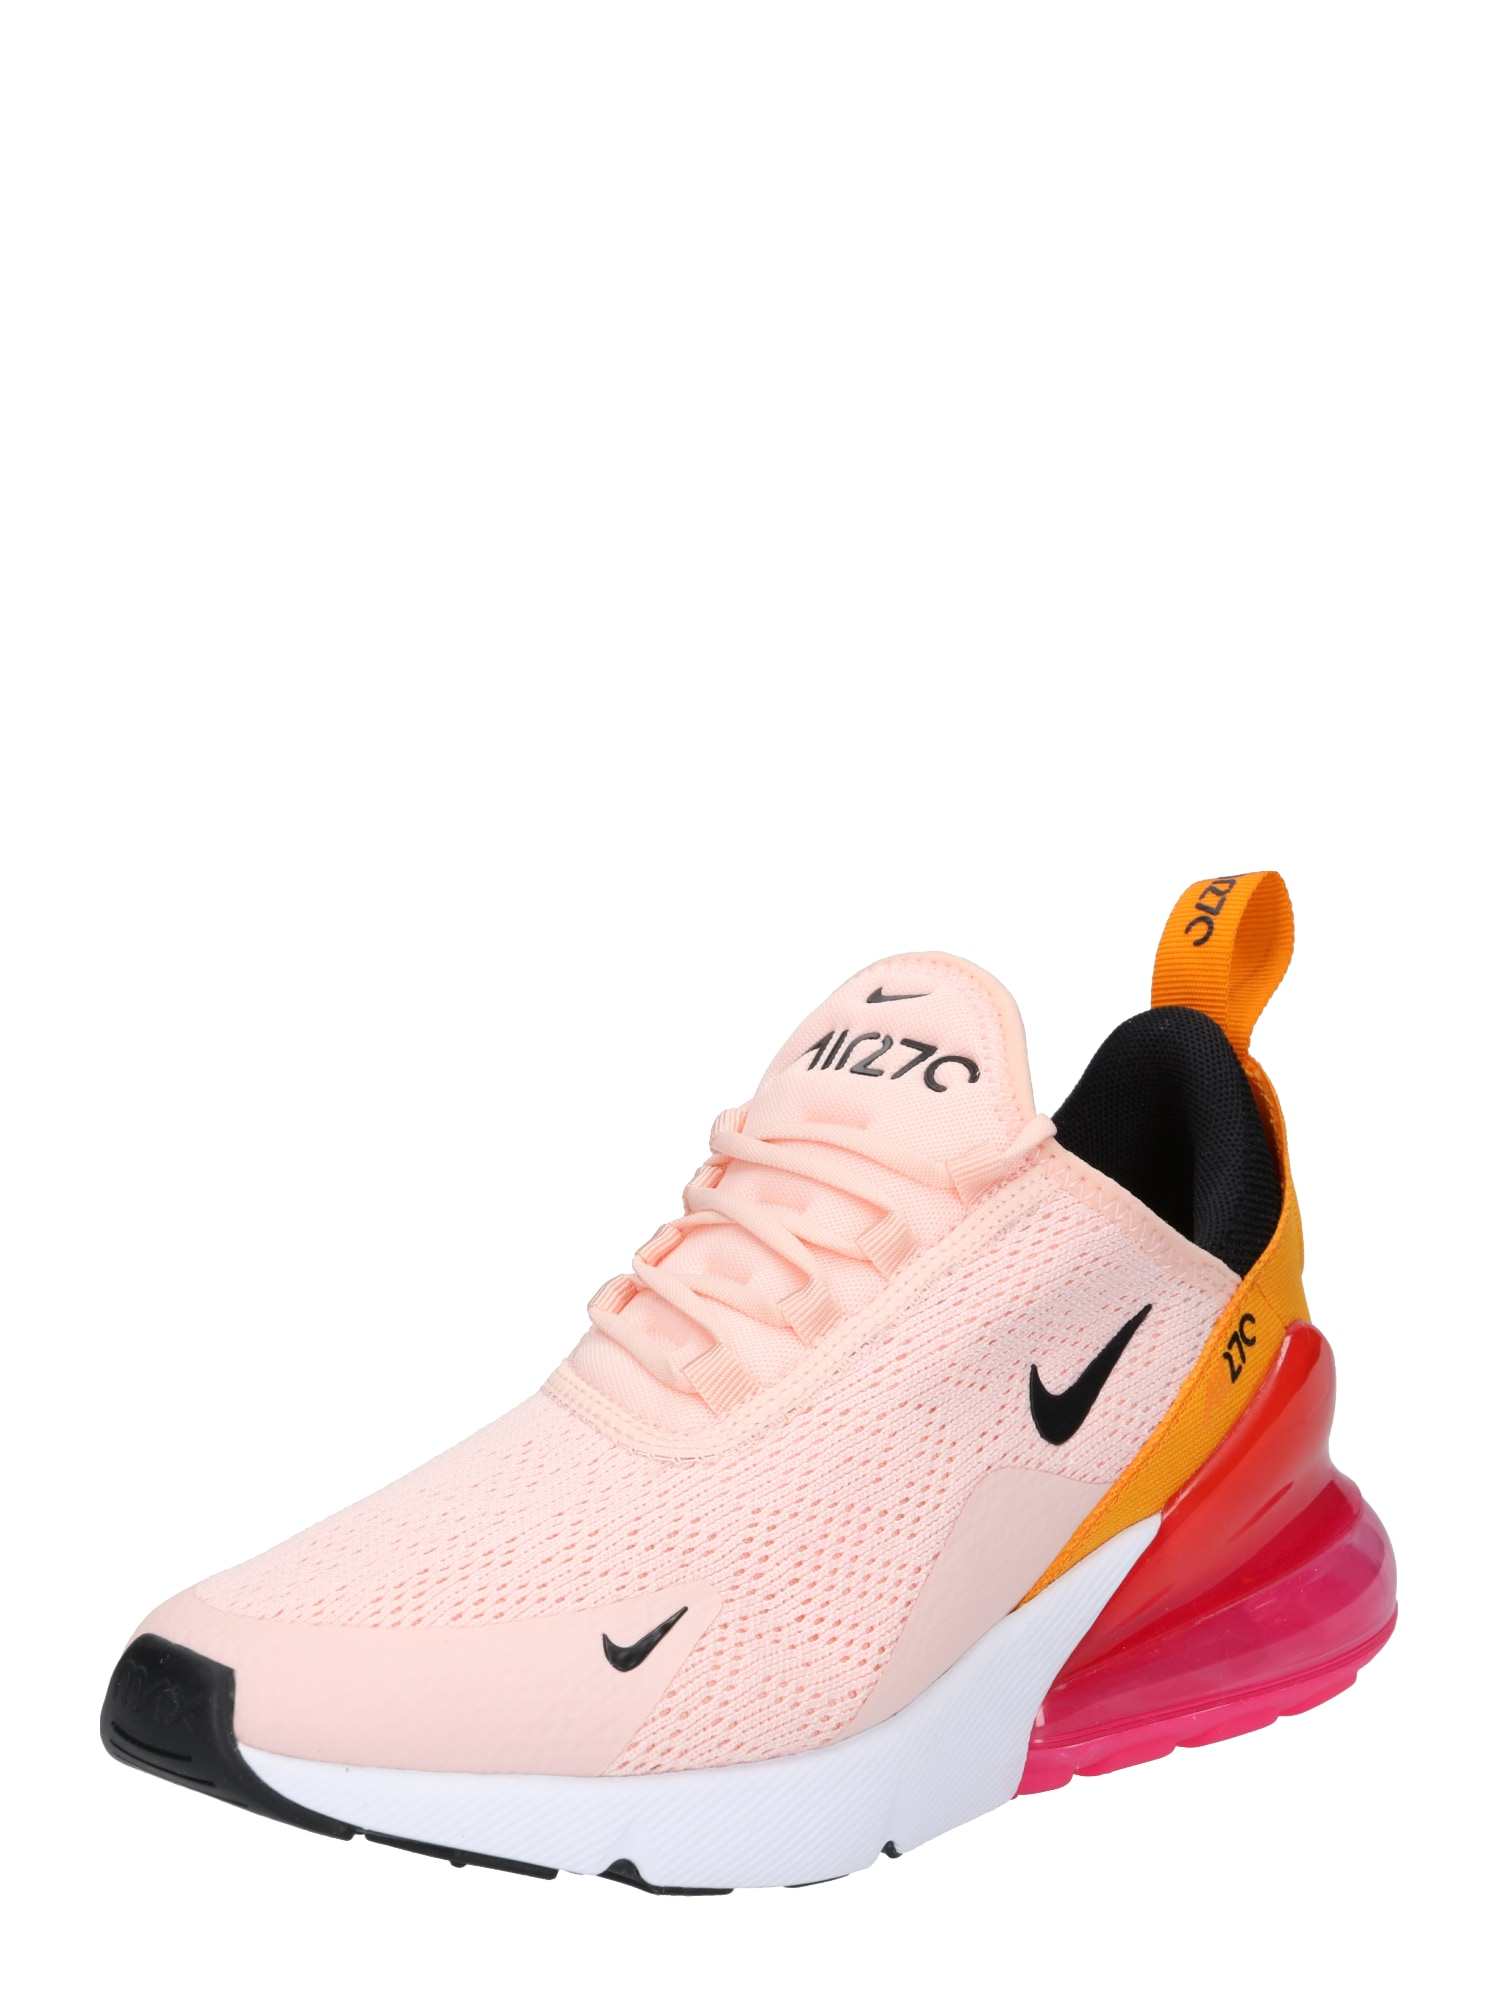 Nike Sportswear, Dames Sneakers laag 'Air Max 270', rosa / rood / wit